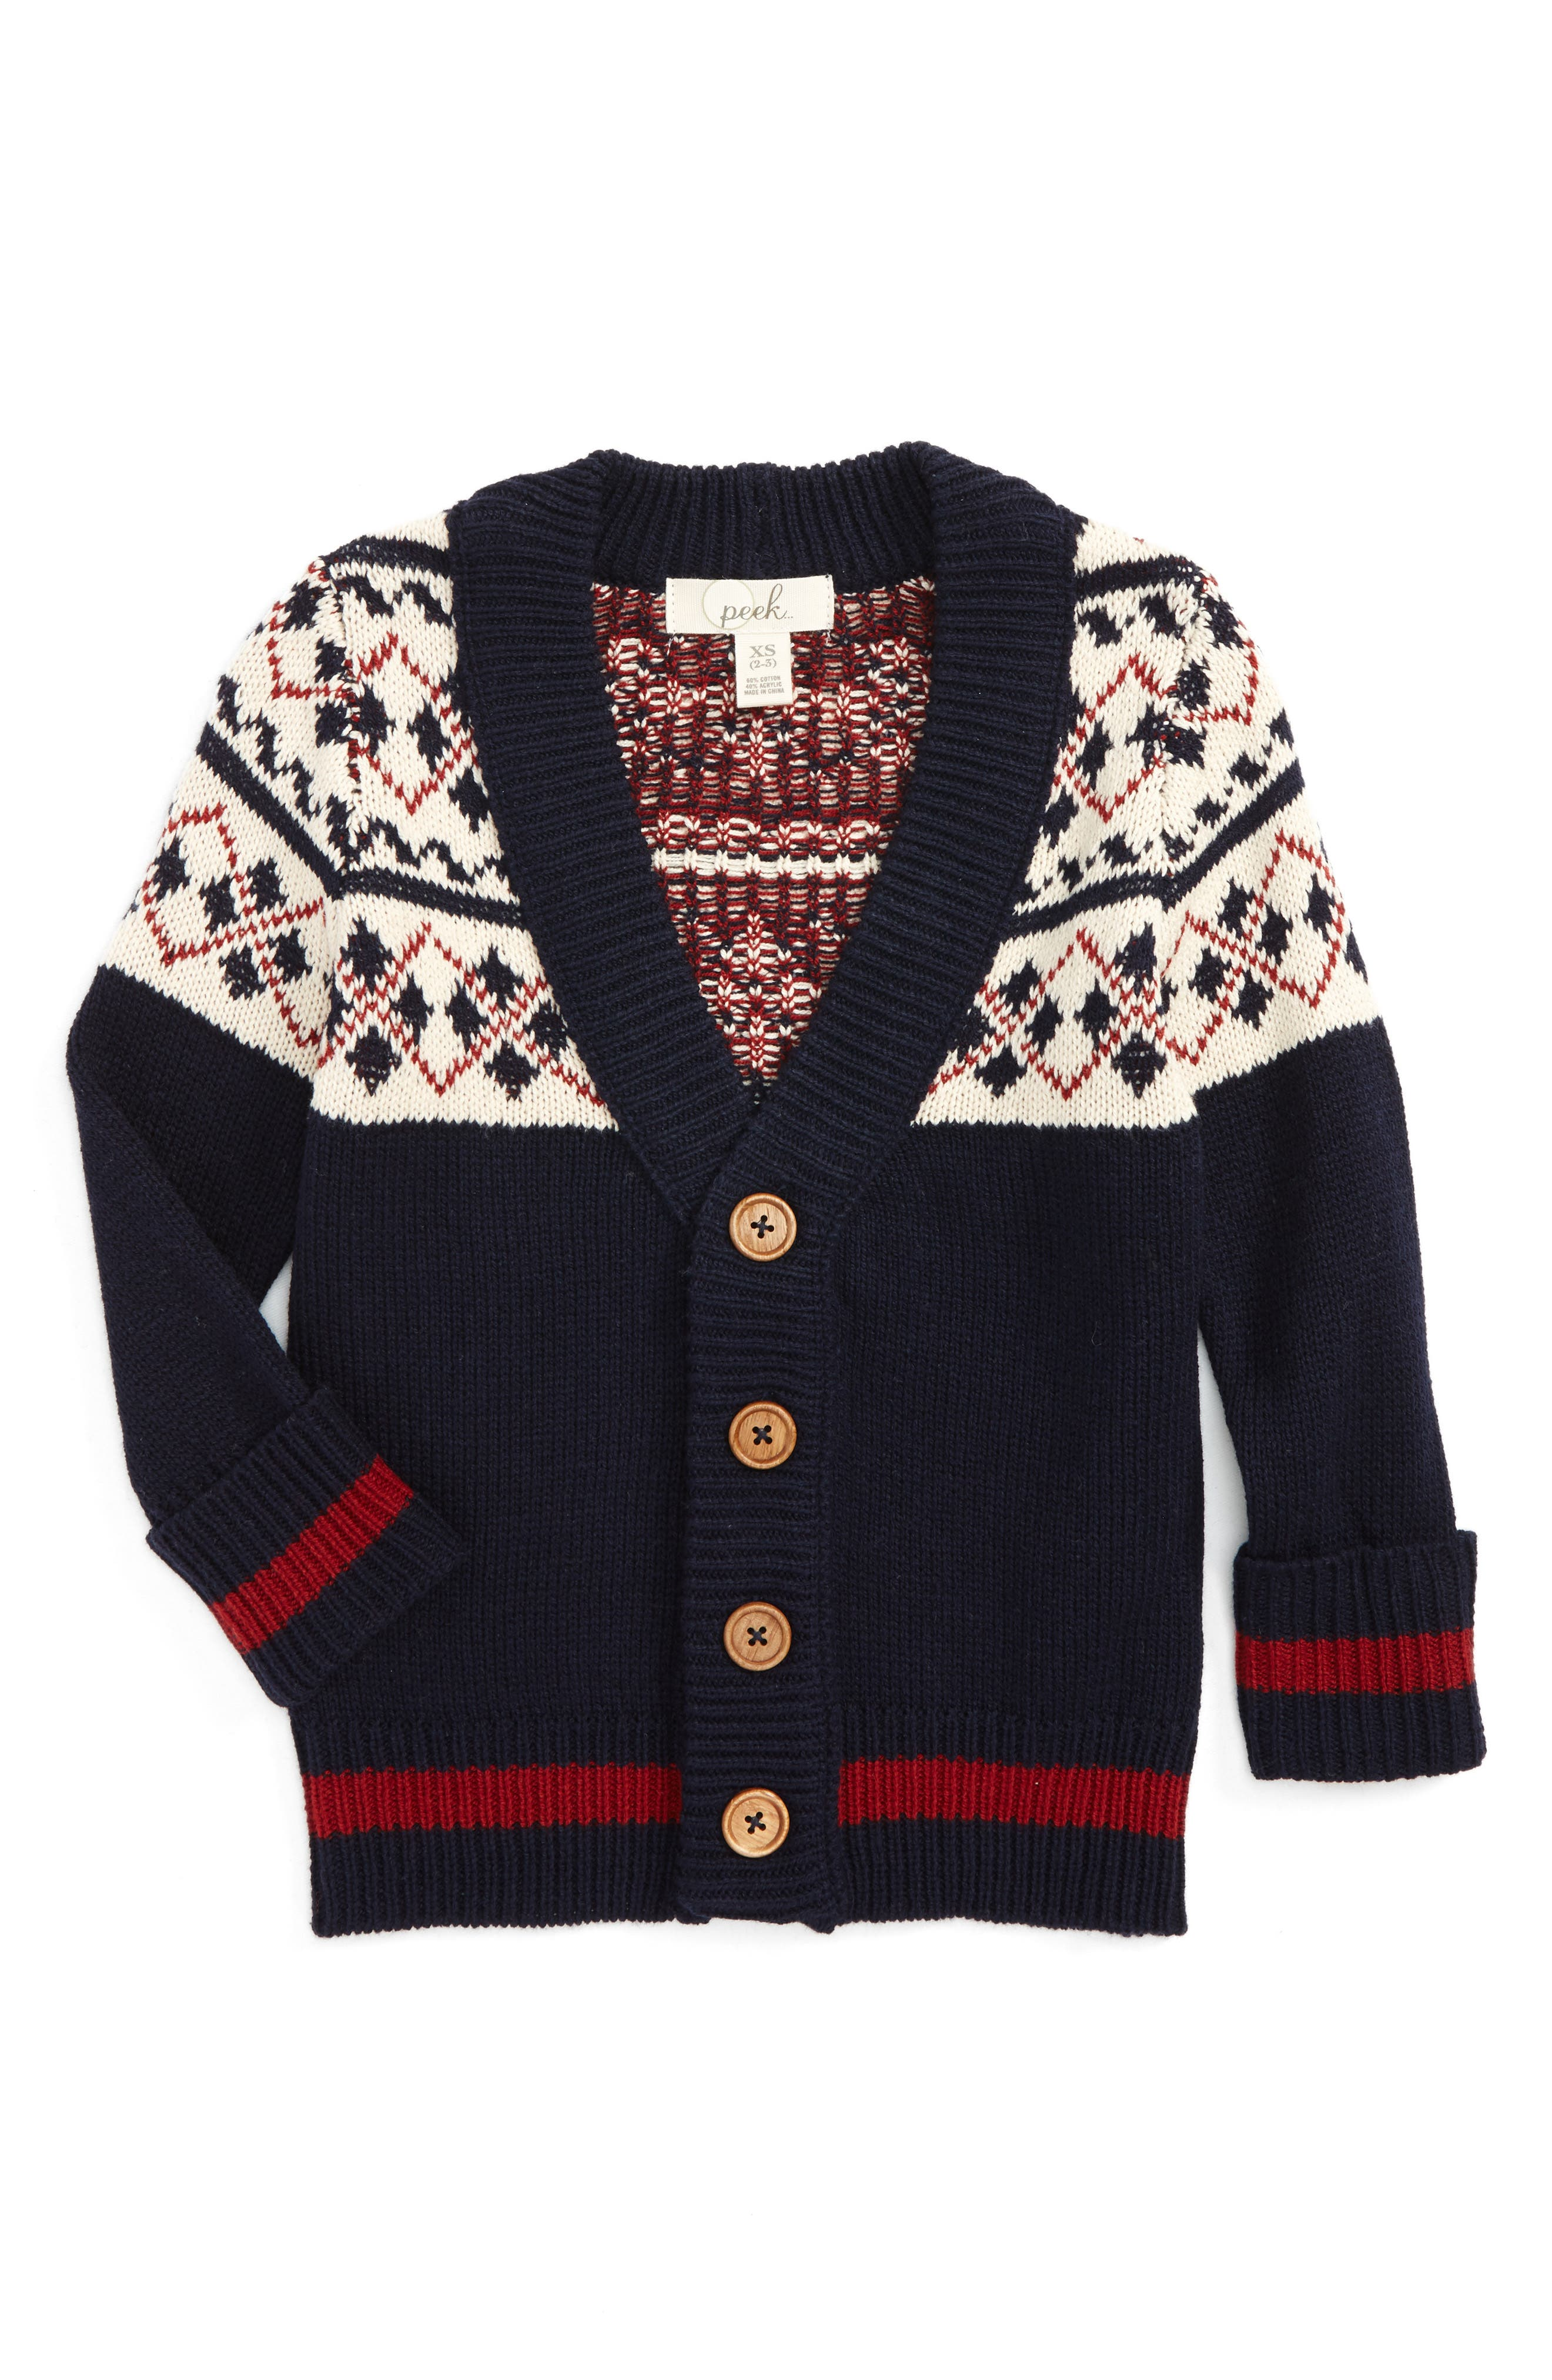 Alternate Image 1 Selected - Peek Mackai Pattern Cardigan Sweater (Toddler Boys, Little Boys & Big Boys)